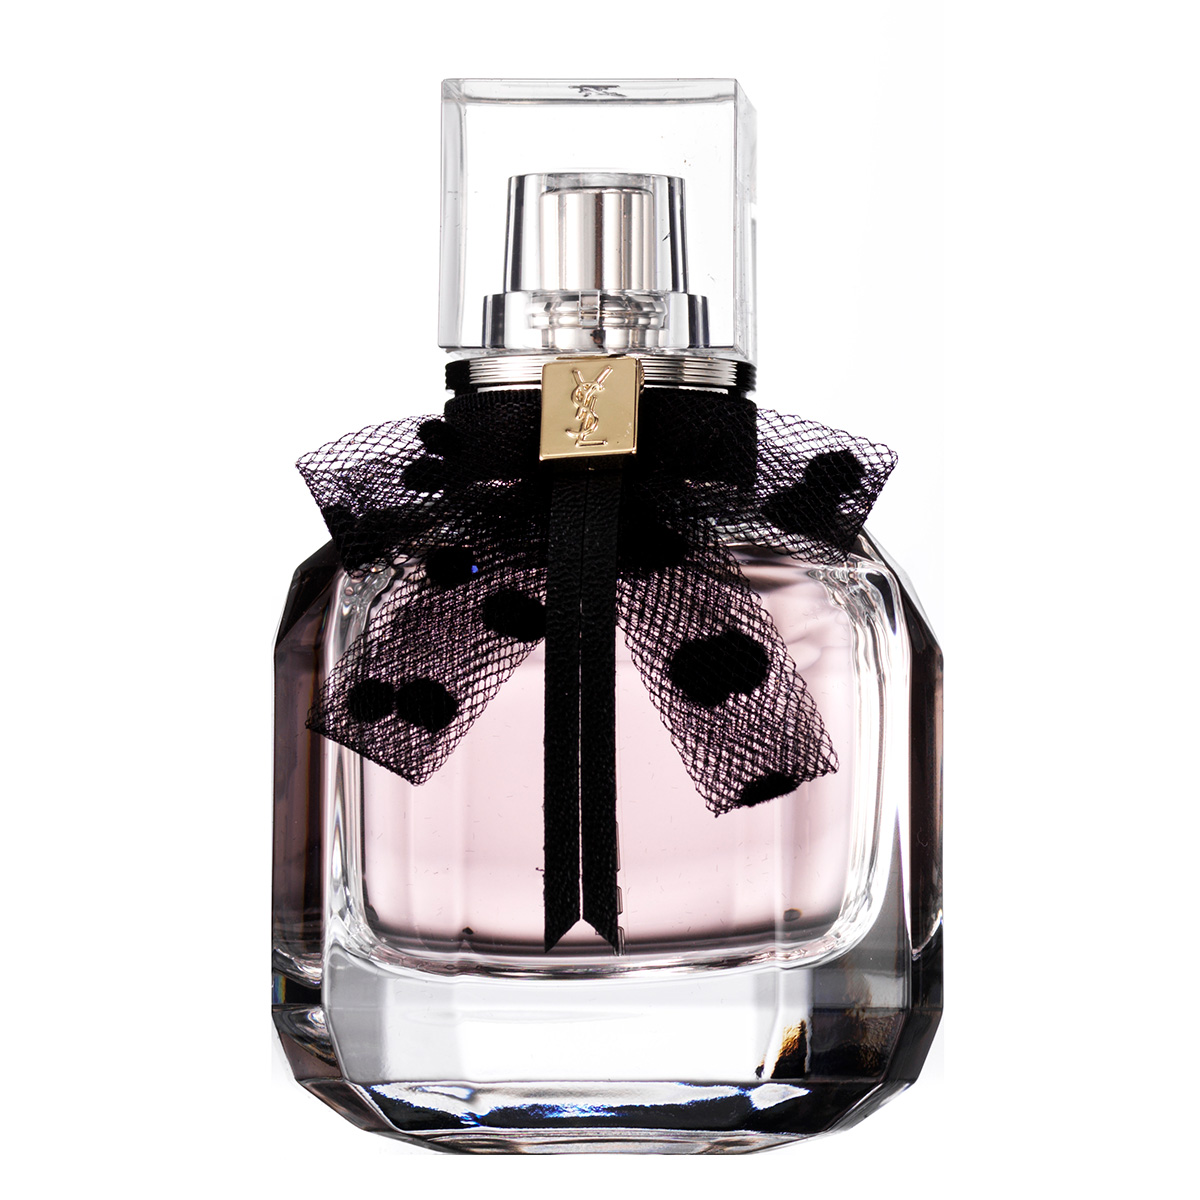 Yves Saint Laurent Mon Paris EdT - 30 ml